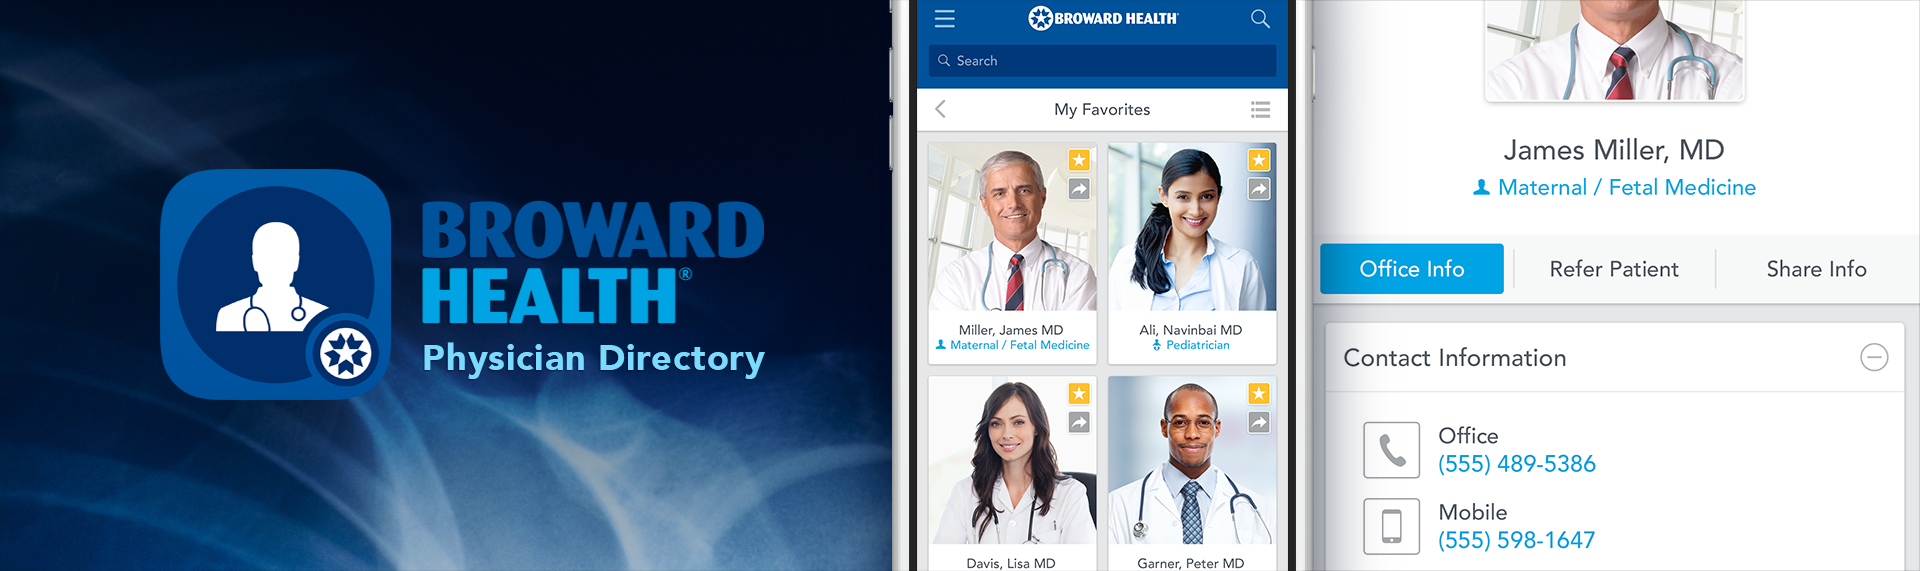 Broward Health Physician's Directory  iPhone Application UX & UI Design  Broward Health, one of the 10 largest healthcare networks in the United States, contracted The Skins Factory (via AAJ Technologies) to redesign their mobile Physician's Directory iPhone app. Using a crisp, sleek visual design based on the brand identity's color scheme, the app is not only super intuitive to use, but designed for speed, so that busy physicians can redirect their patients to other doctors in the BH Network.